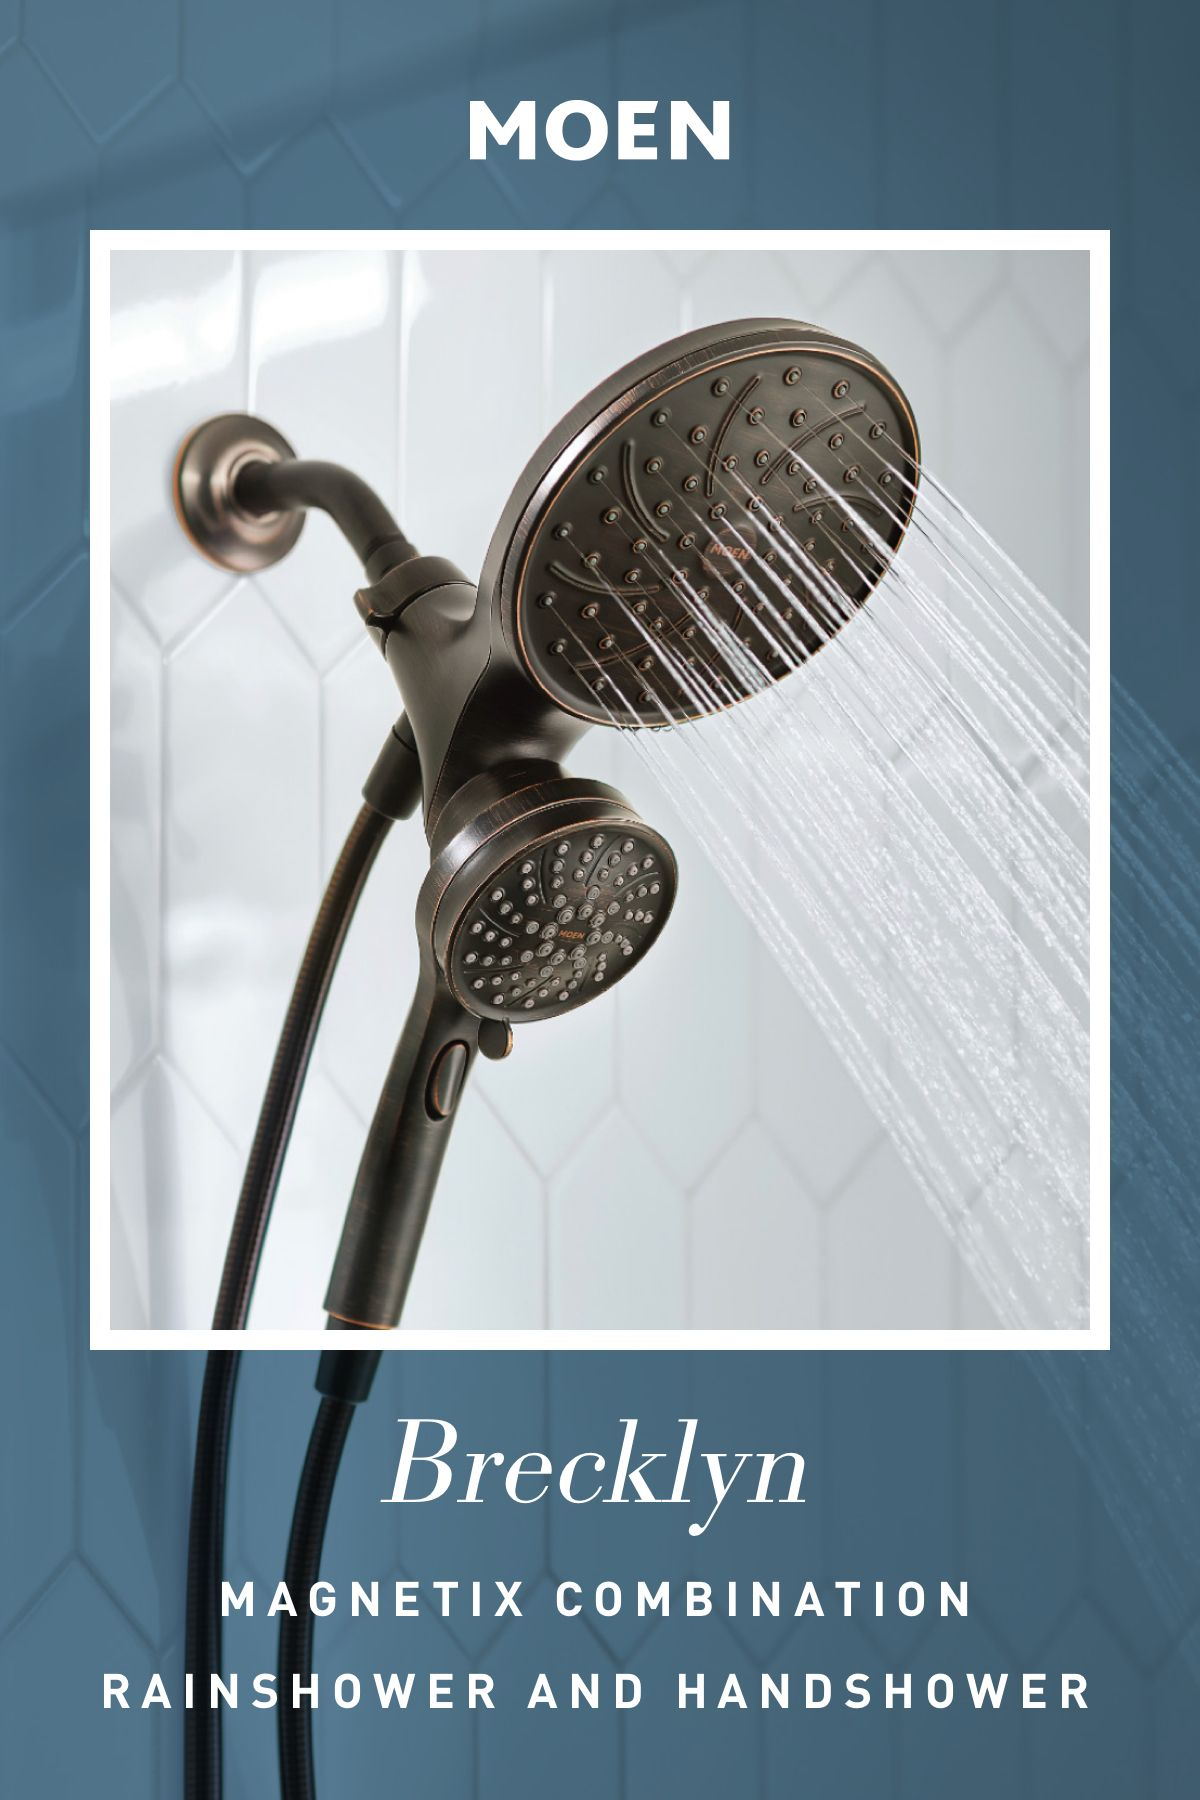 Brecklyn shower only with combination